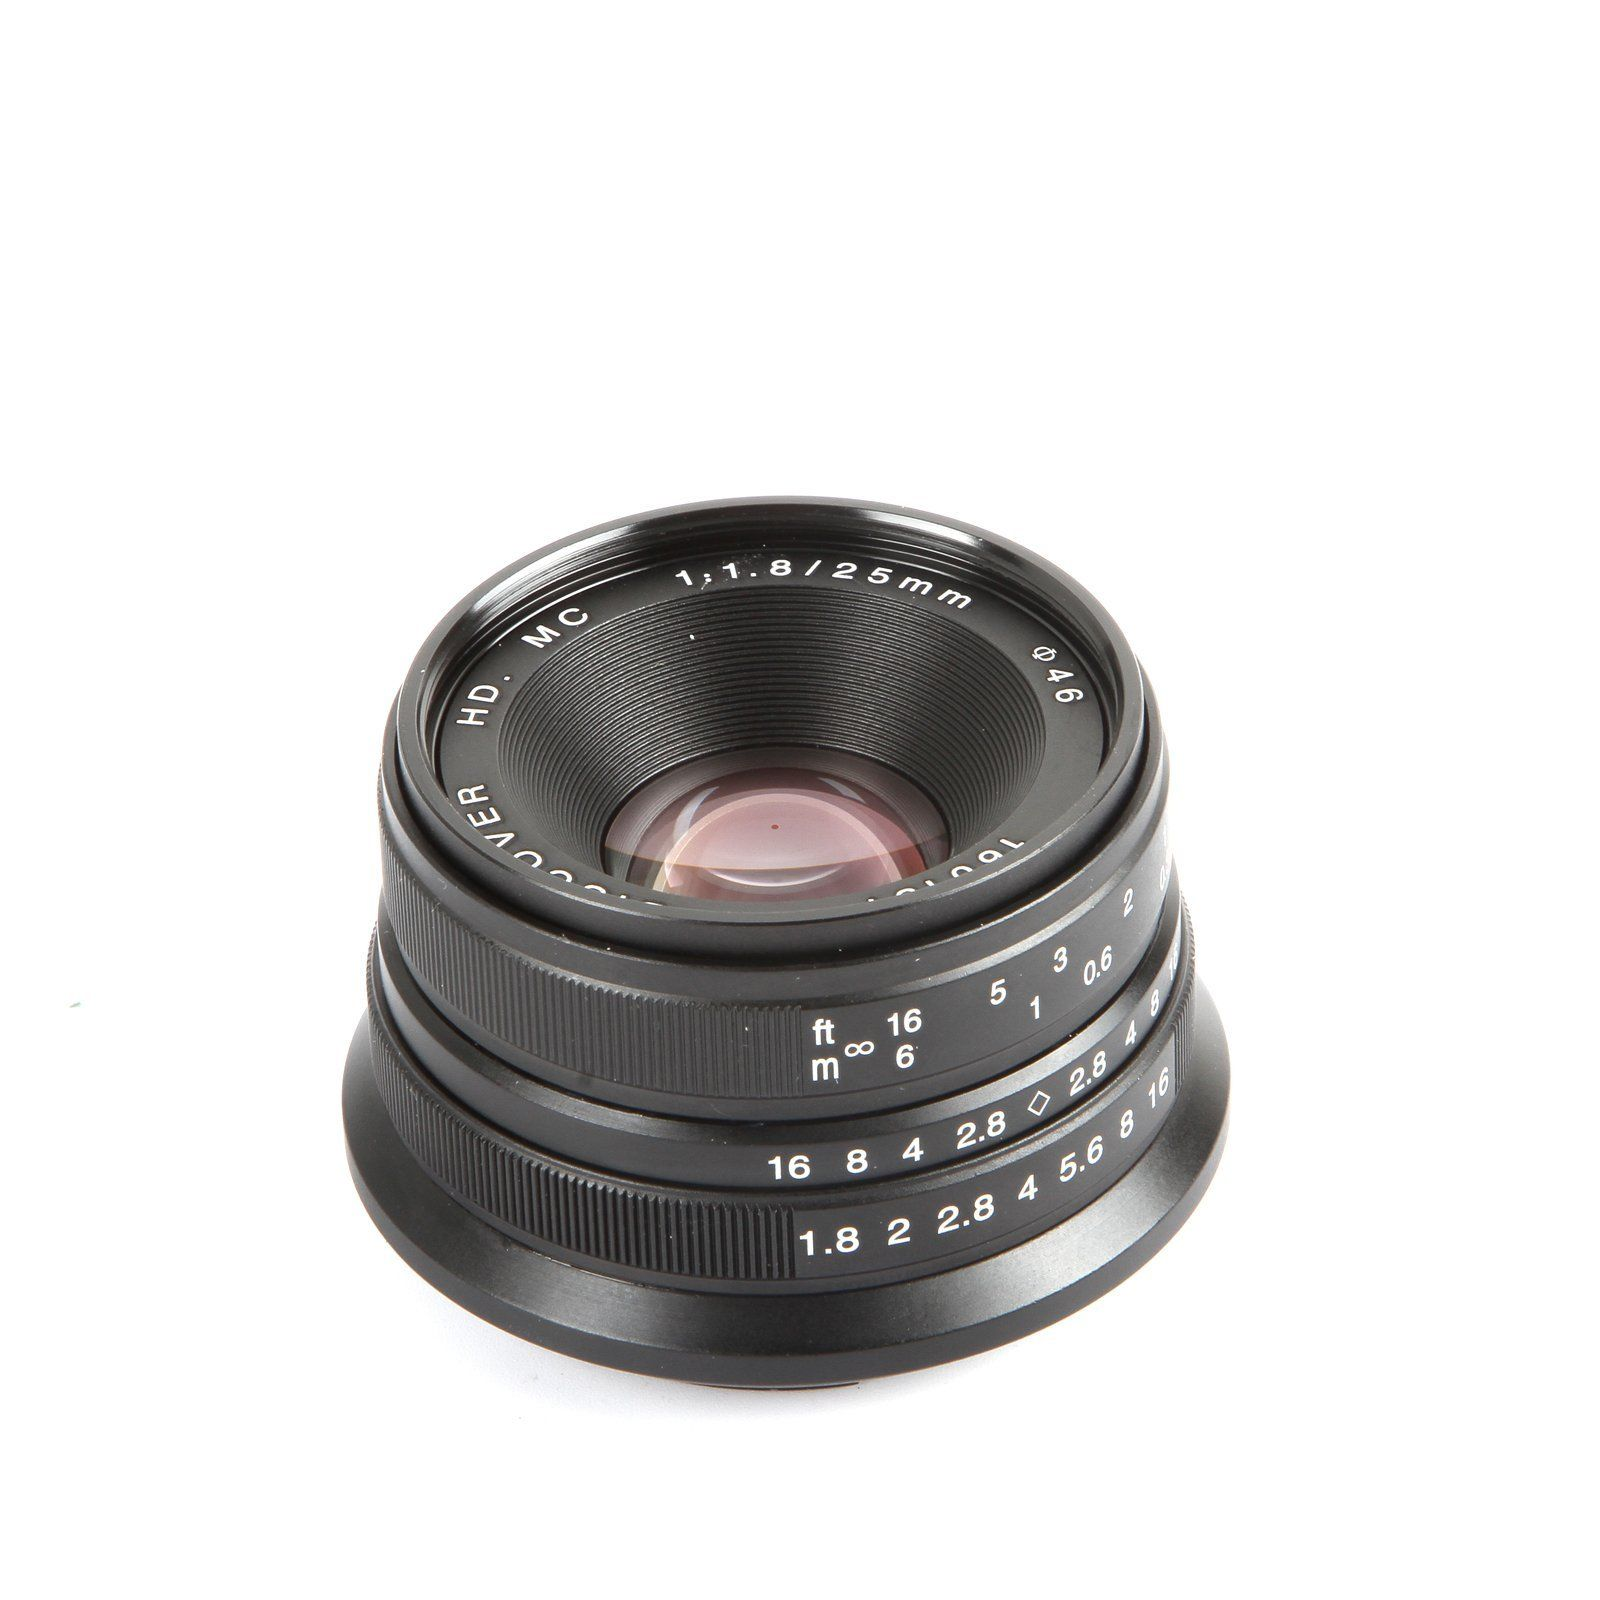 25mm F1.8 F/1.8 HD MC Manual Movie Wide Angle Lens for Fujifilm fx X-A1 XA2 X-A3 X-M1 X-E1 X-E2 X-Pro1 X-T1 XT2 XT10 XT20 camera компактная пудра yadah yadah air powder pact